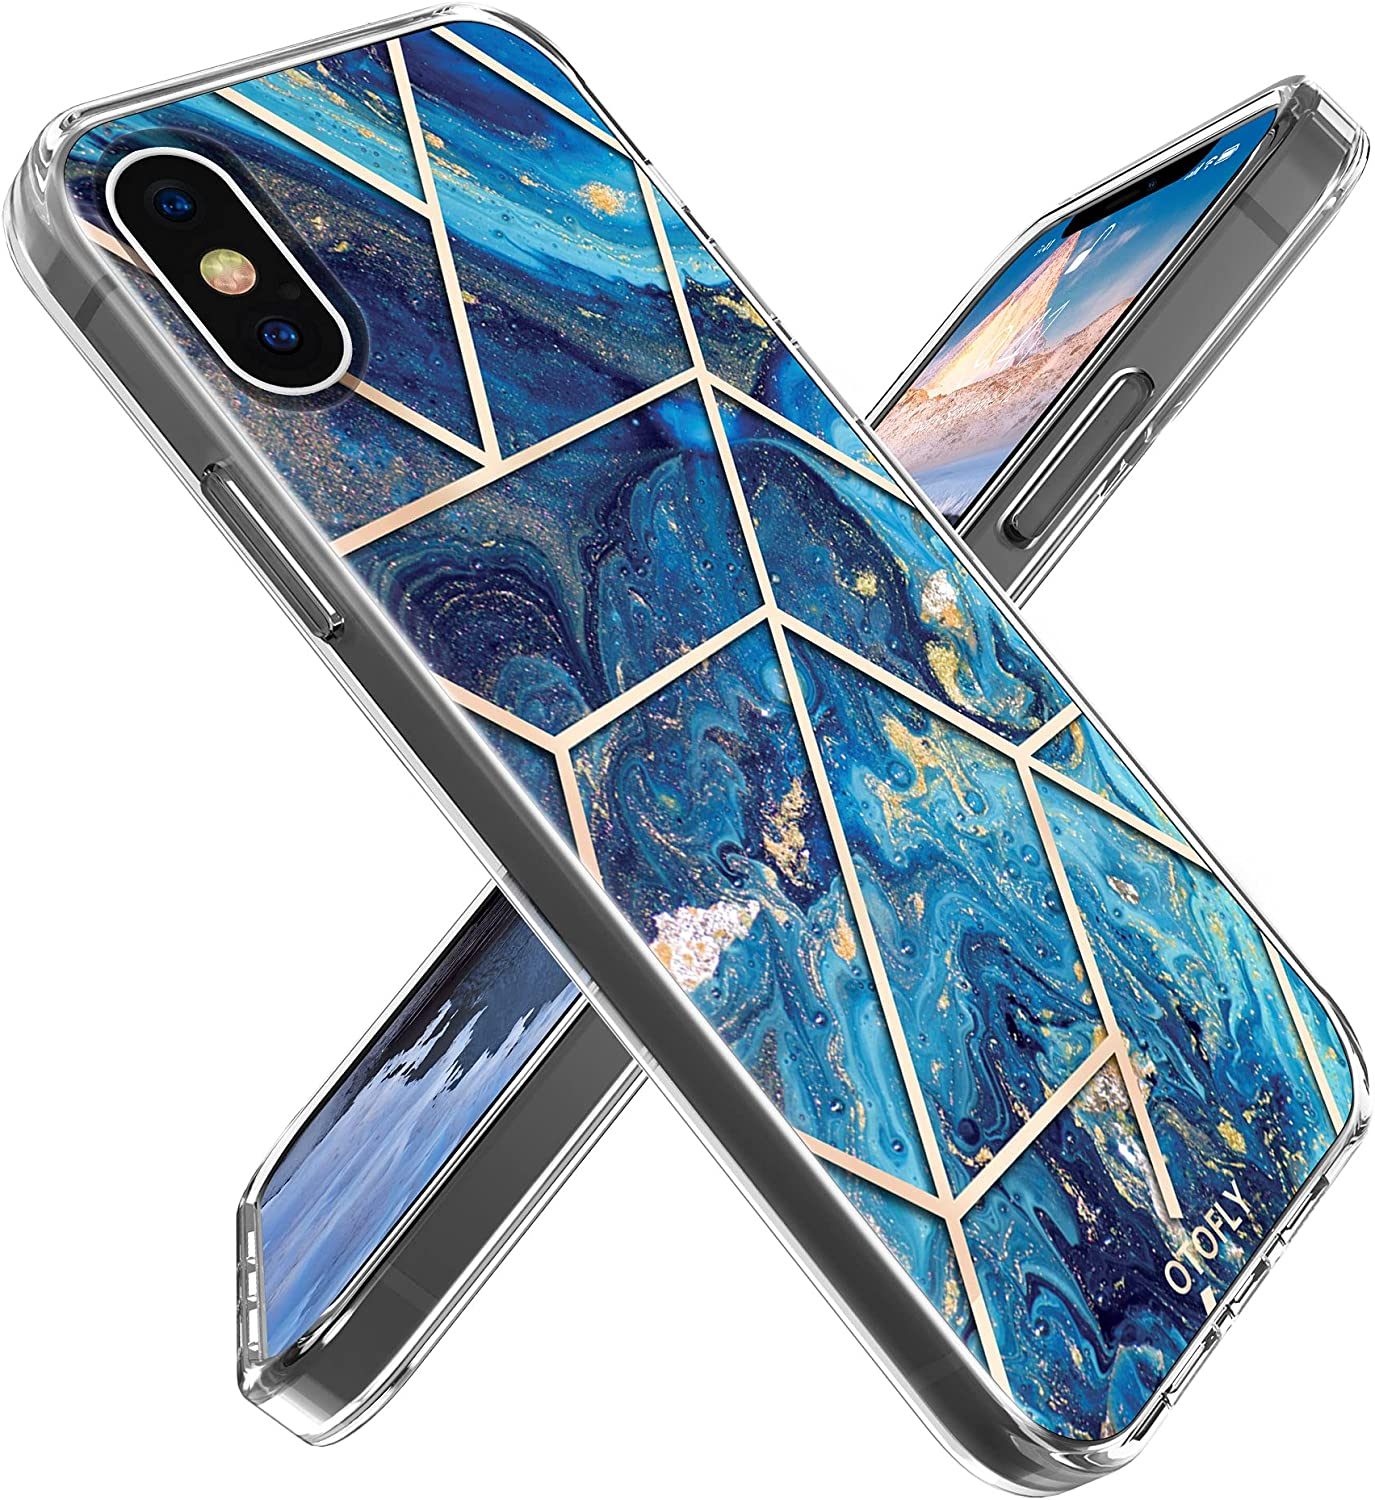 OTOFLY iPhone X Case, iPhone Xs Case,Ultra Slim Thin Stunning Marble Soft TPU Rubber Gel Phone Case Cover Compatible with iPhone X/Xs 5.8 Inch (Navy Blue/Gold)